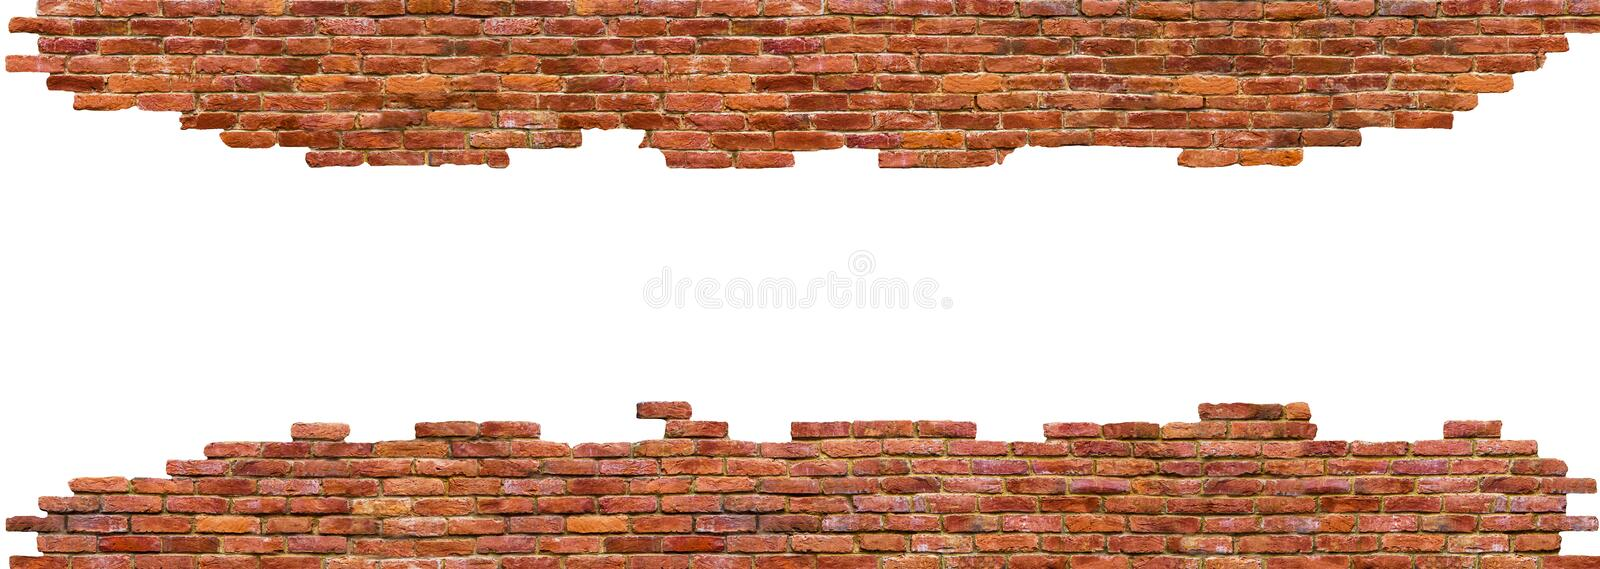 Texture of brick wall High quality, isolated on white stock images